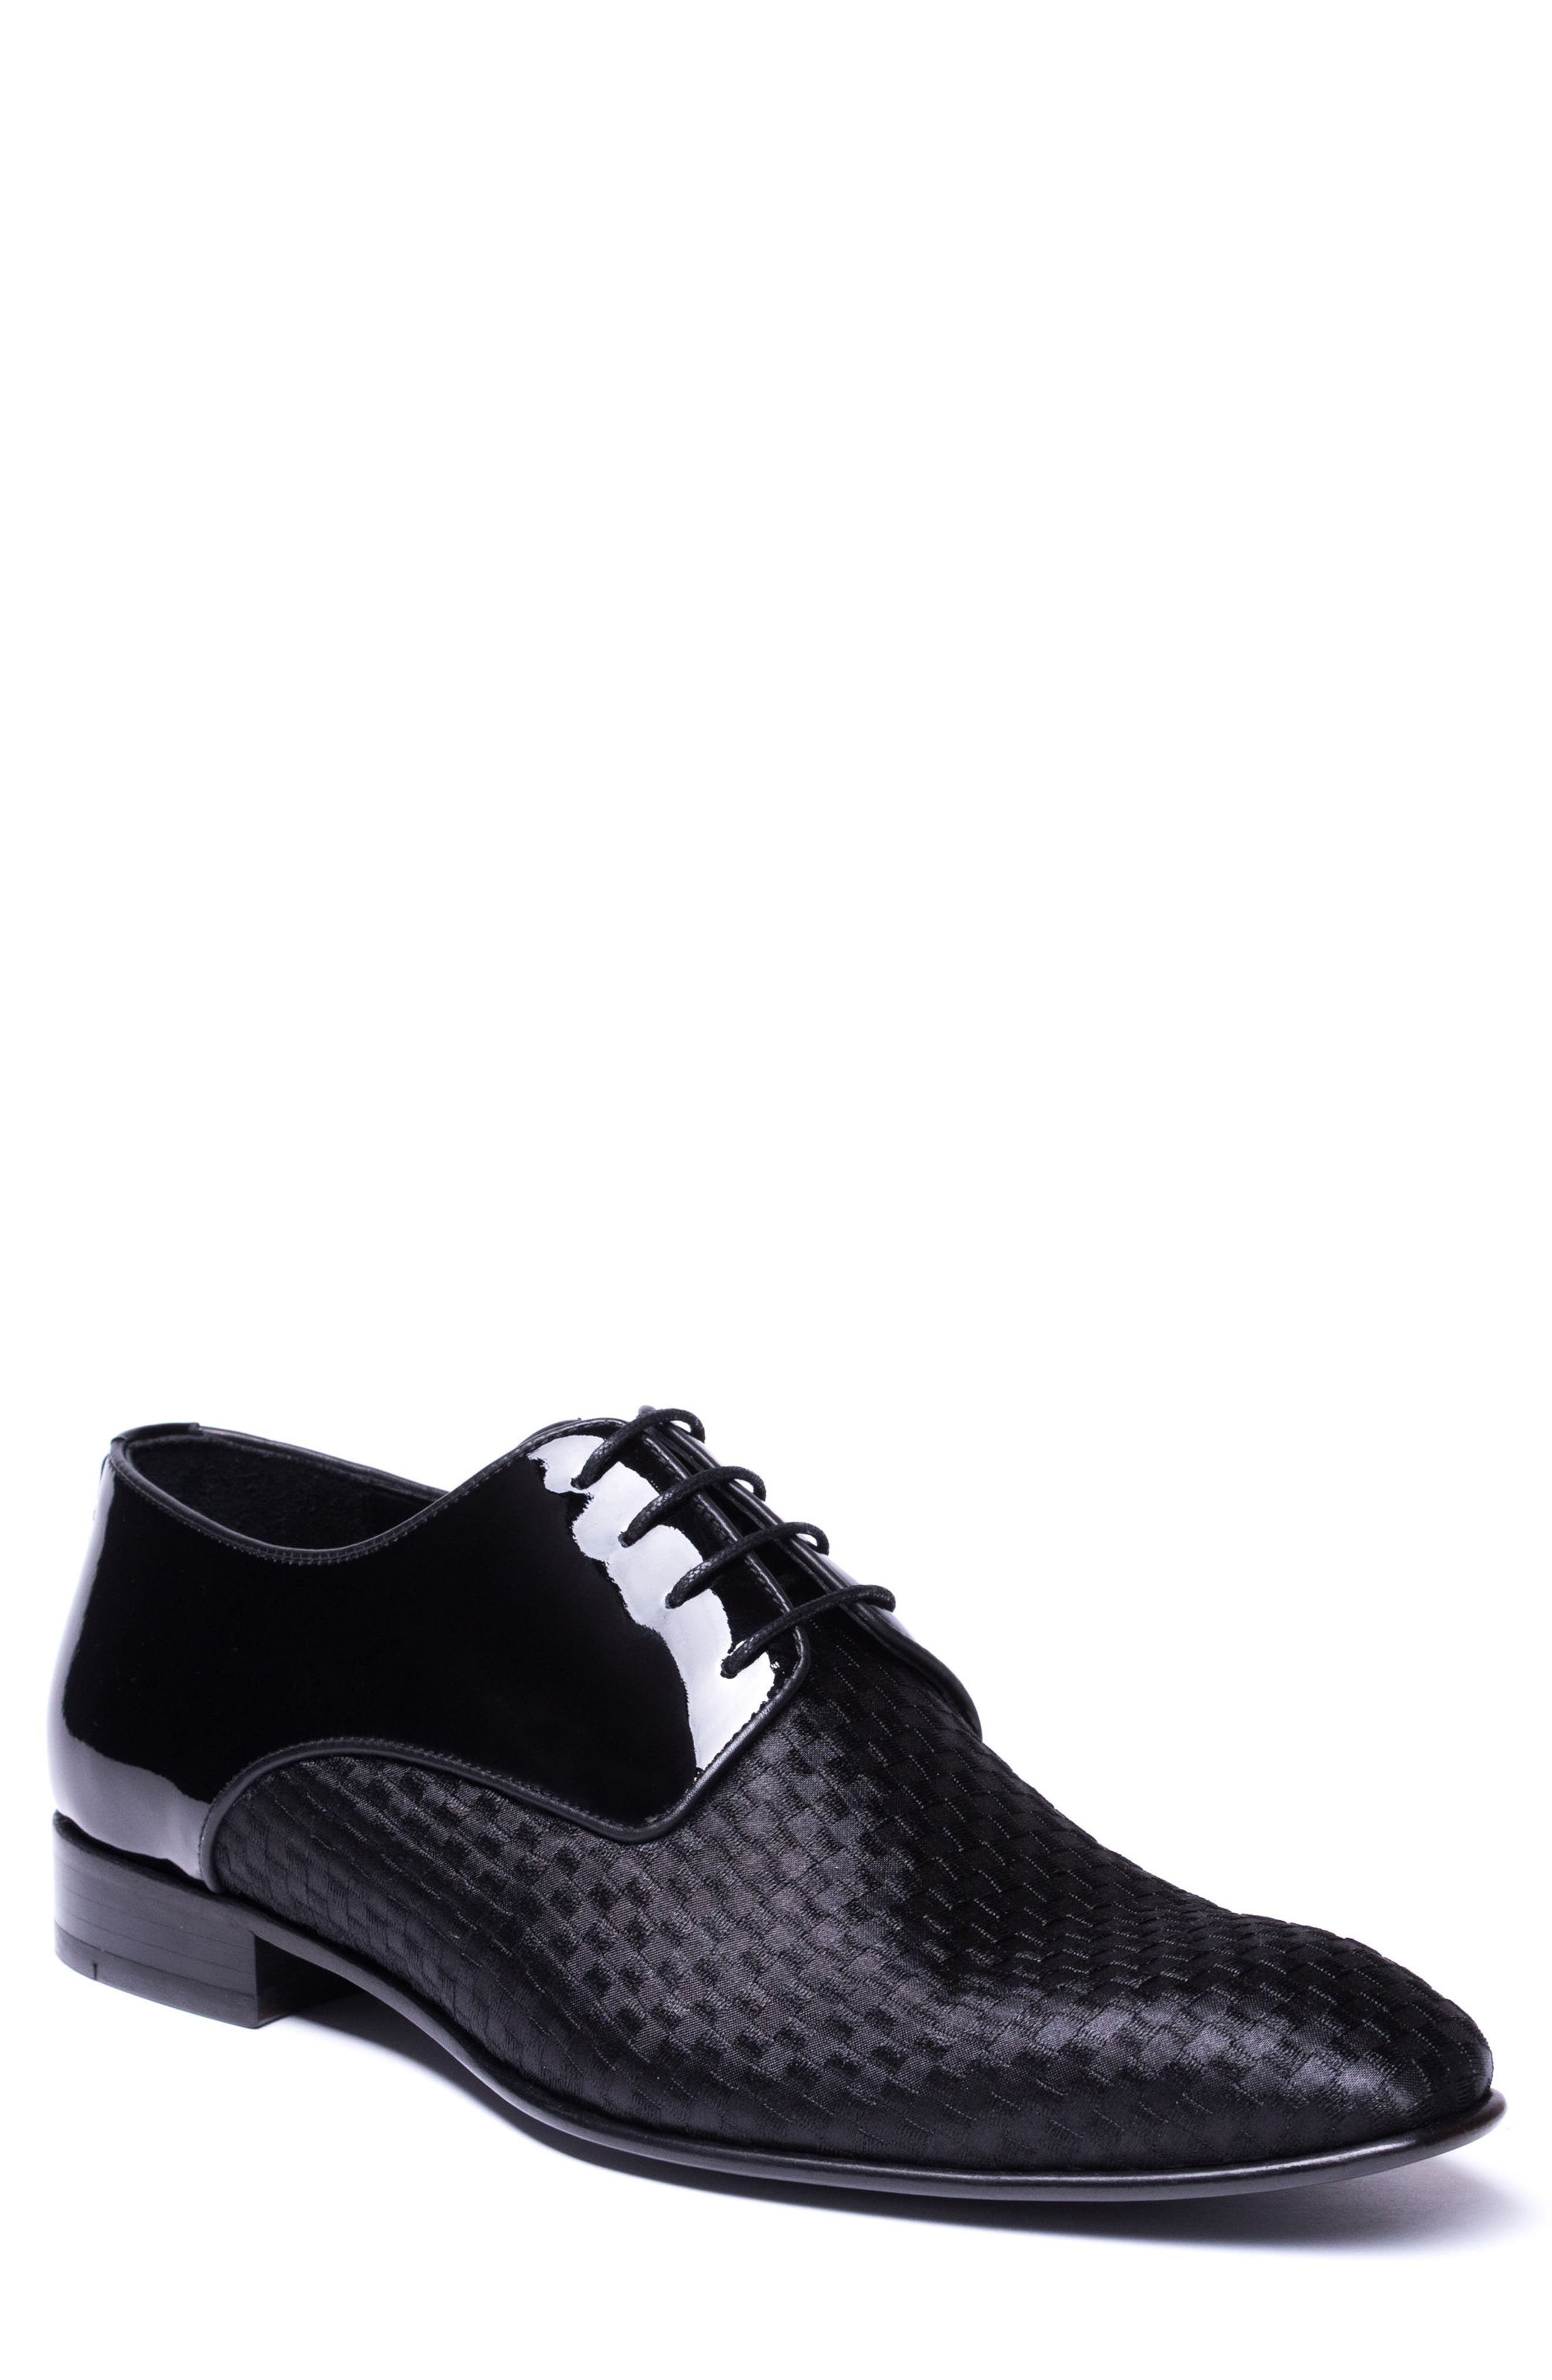 JARED LANG Marco Checkerboard Derby, Main, color, BLACK LEATHER